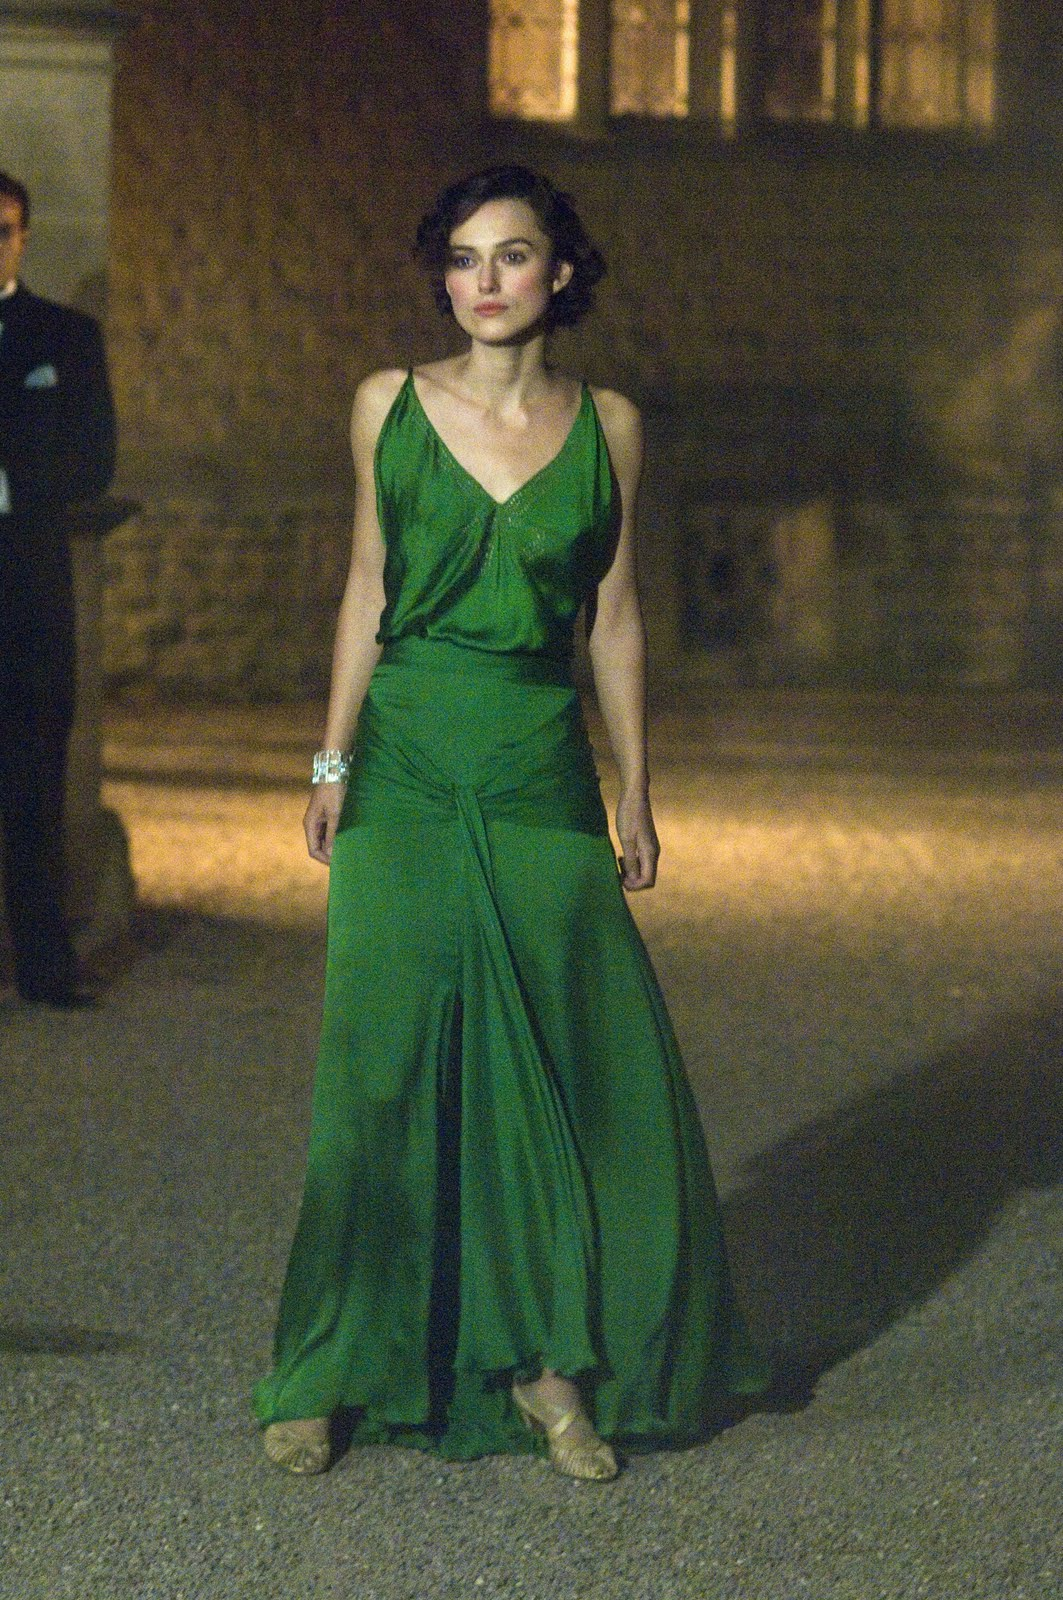 Film Costume: Atonement: The Green Dress